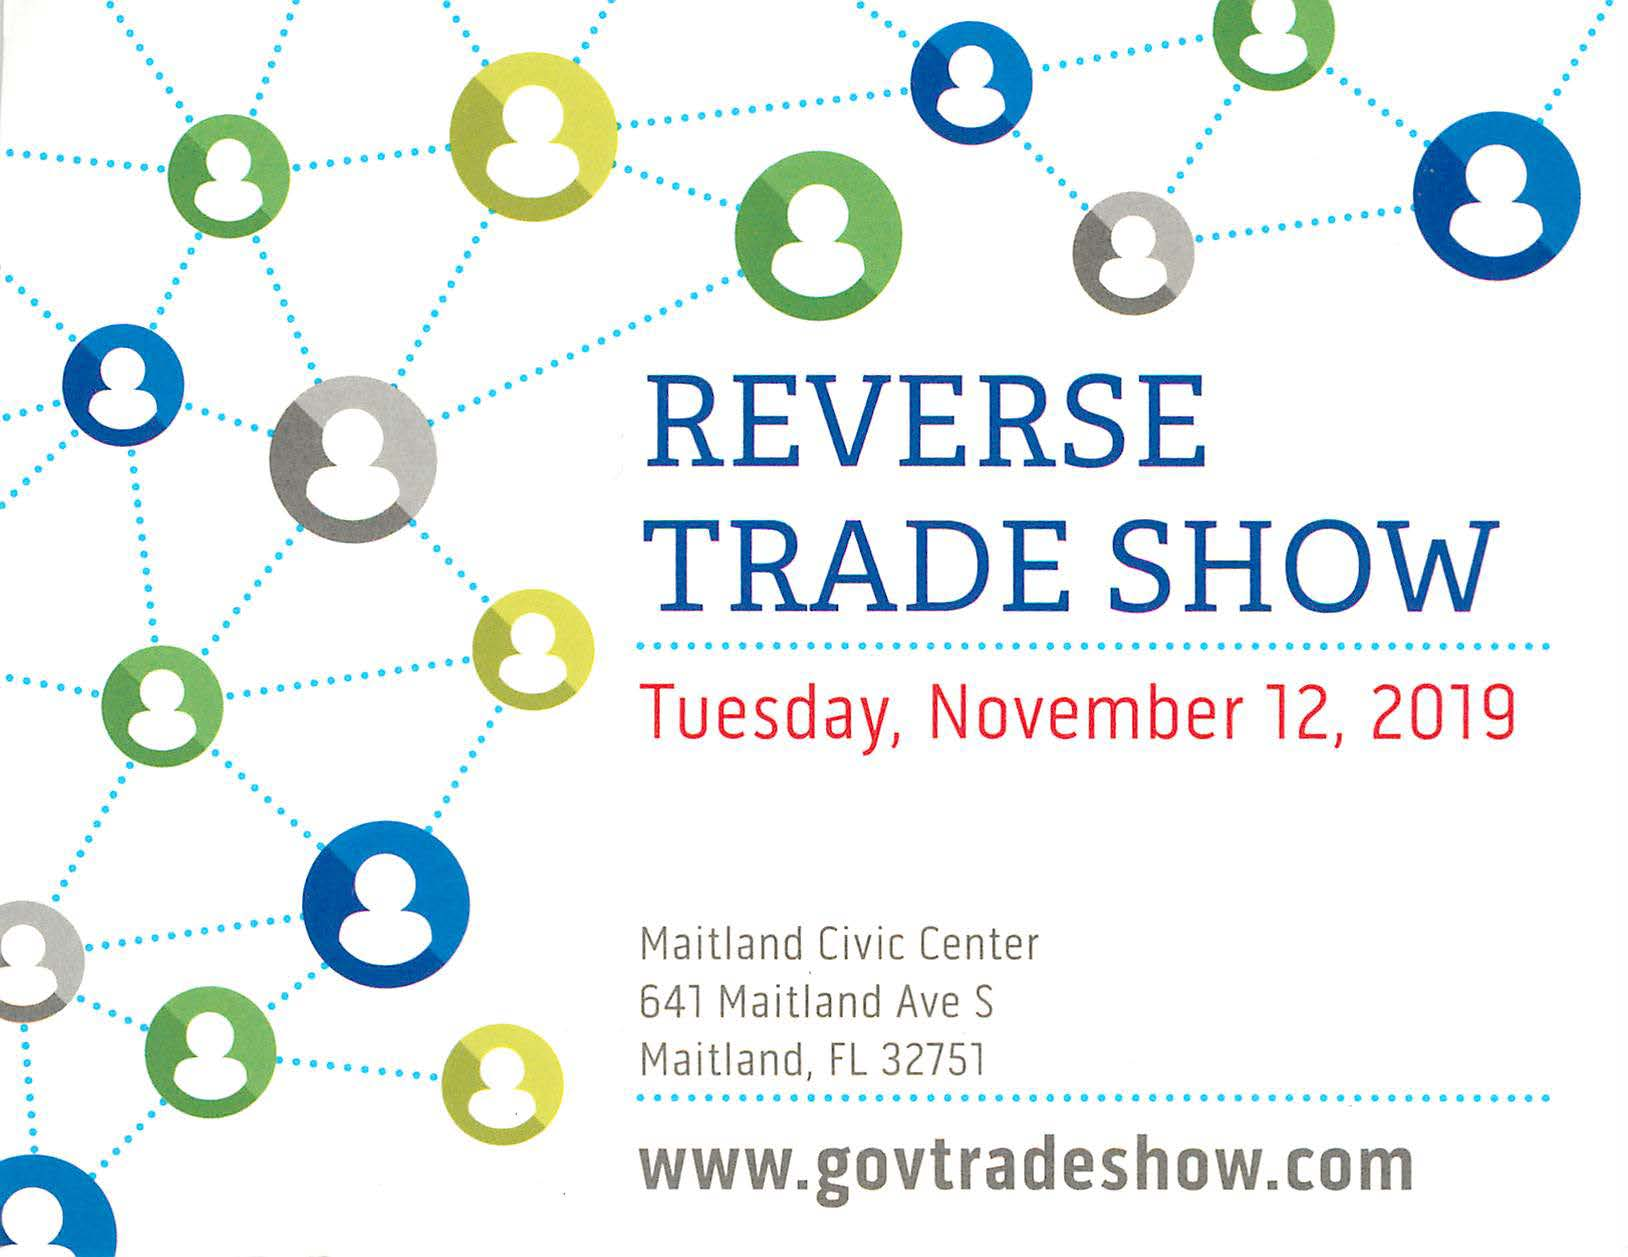 Reverse Trade Show_Page_1.jpg